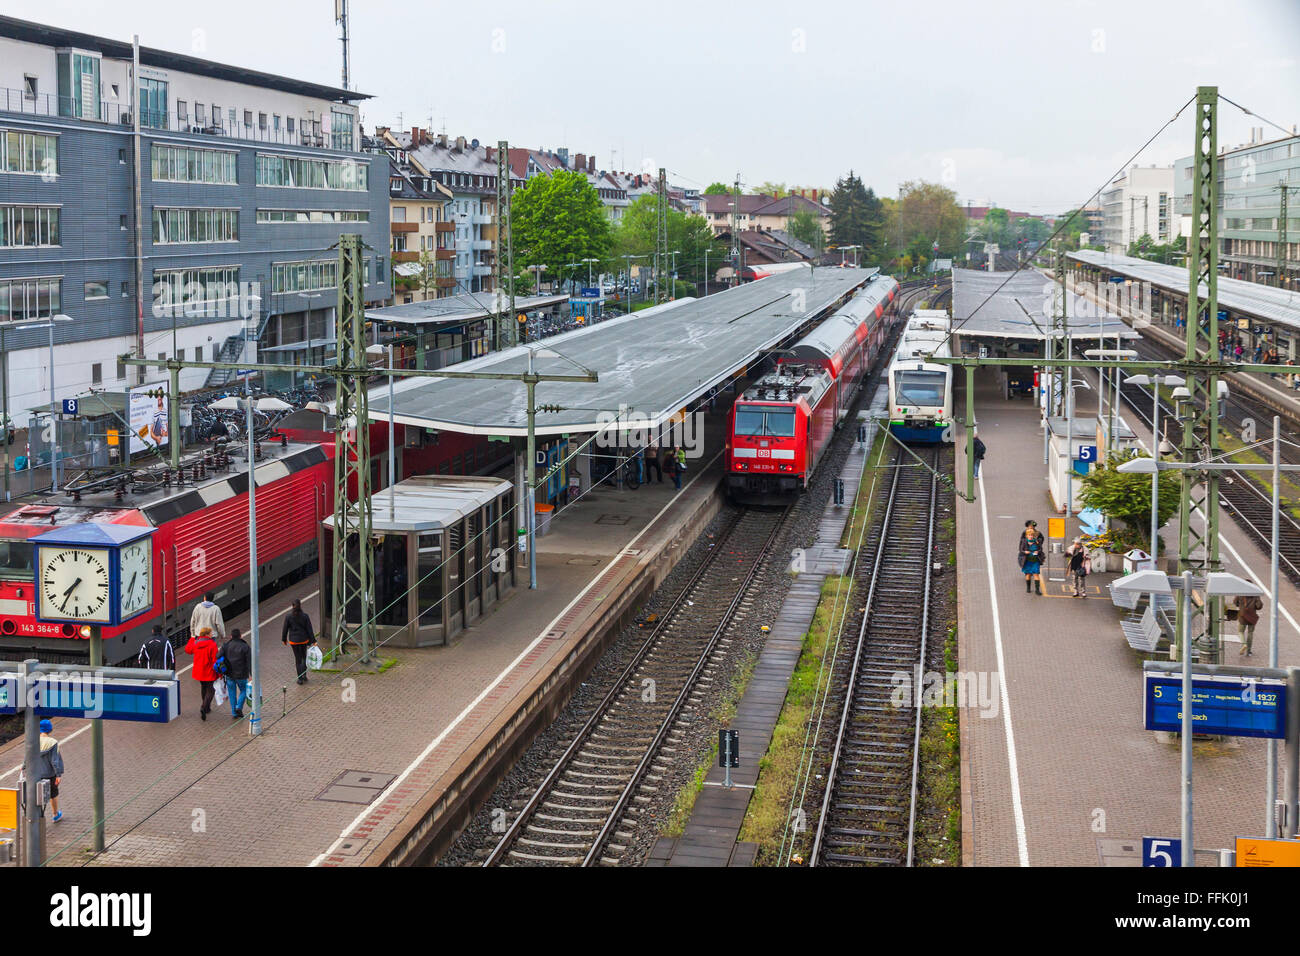 freiburg hauptbahnhof railway station freiburg im breisgau germany stock photo royalty free. Black Bedroom Furniture Sets. Home Design Ideas